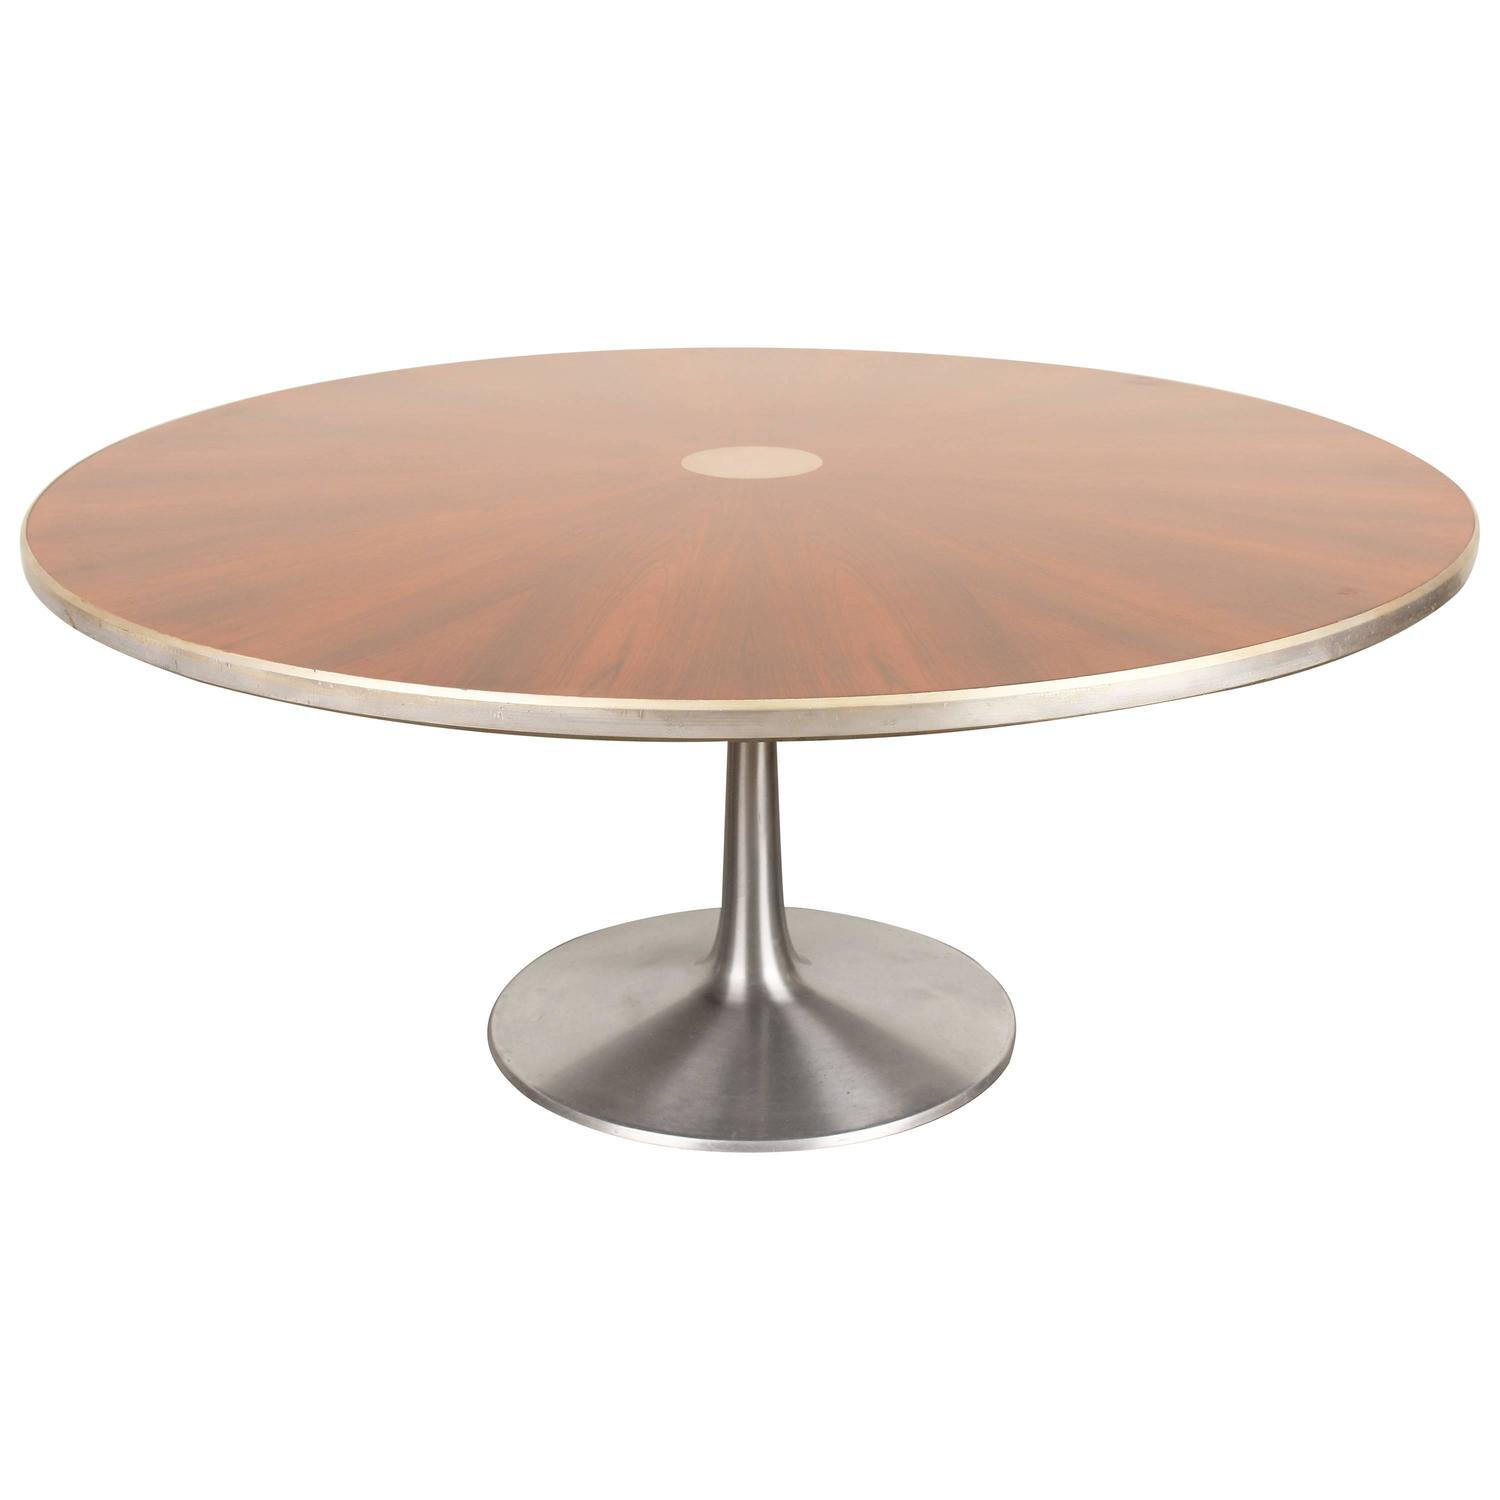 Round rosewood dining table with pedestal base by poul for Dining room table pedestal bases